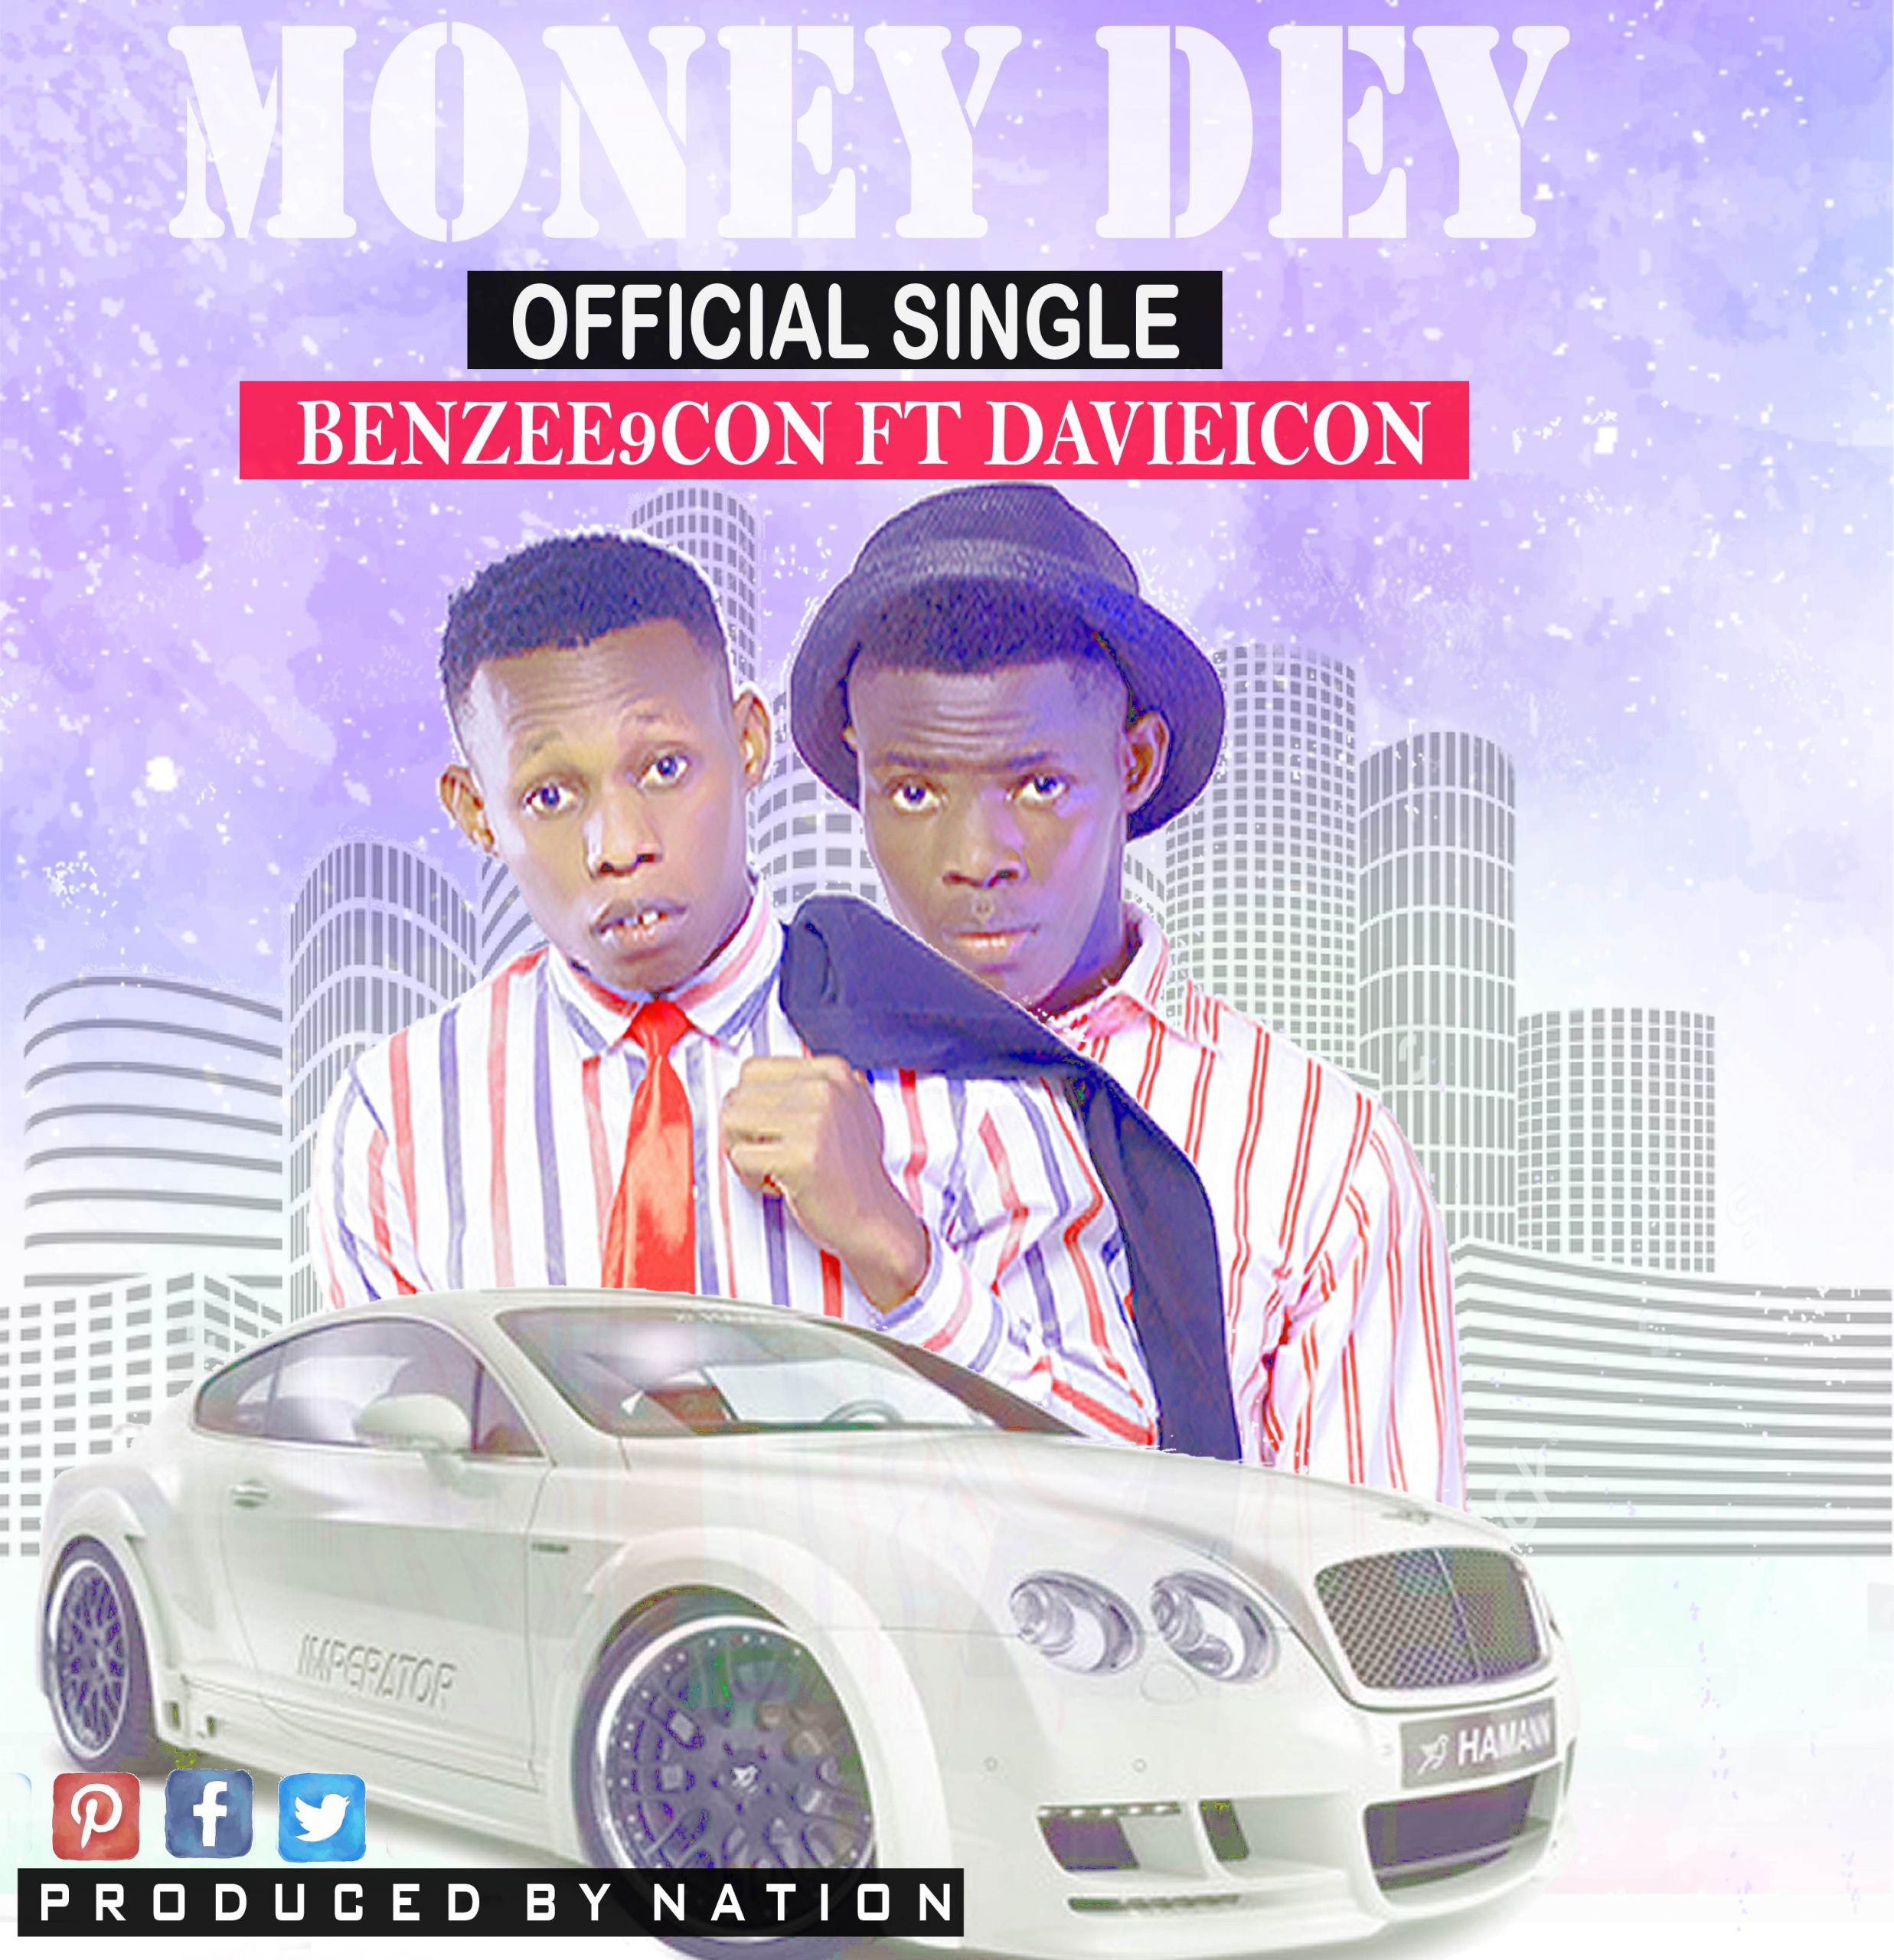 Download MoneyDey by BENZEE9CON ft Davieicon (produced by nation)